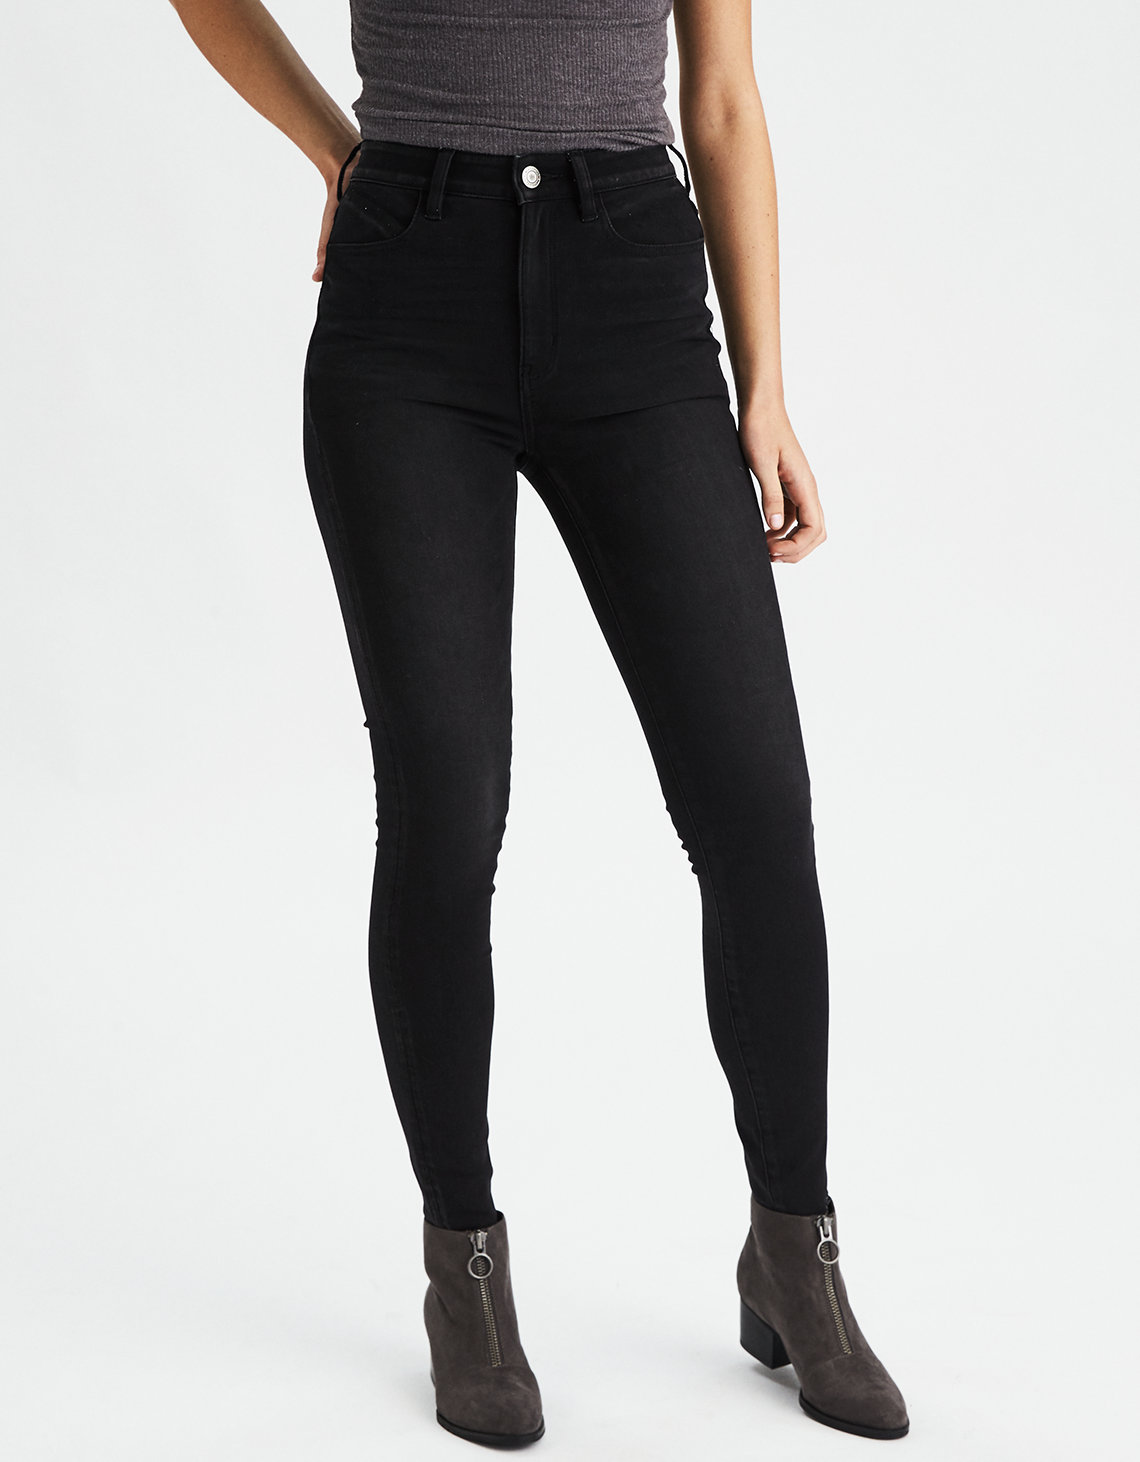 AE Super Soft Highest Waist Jegging